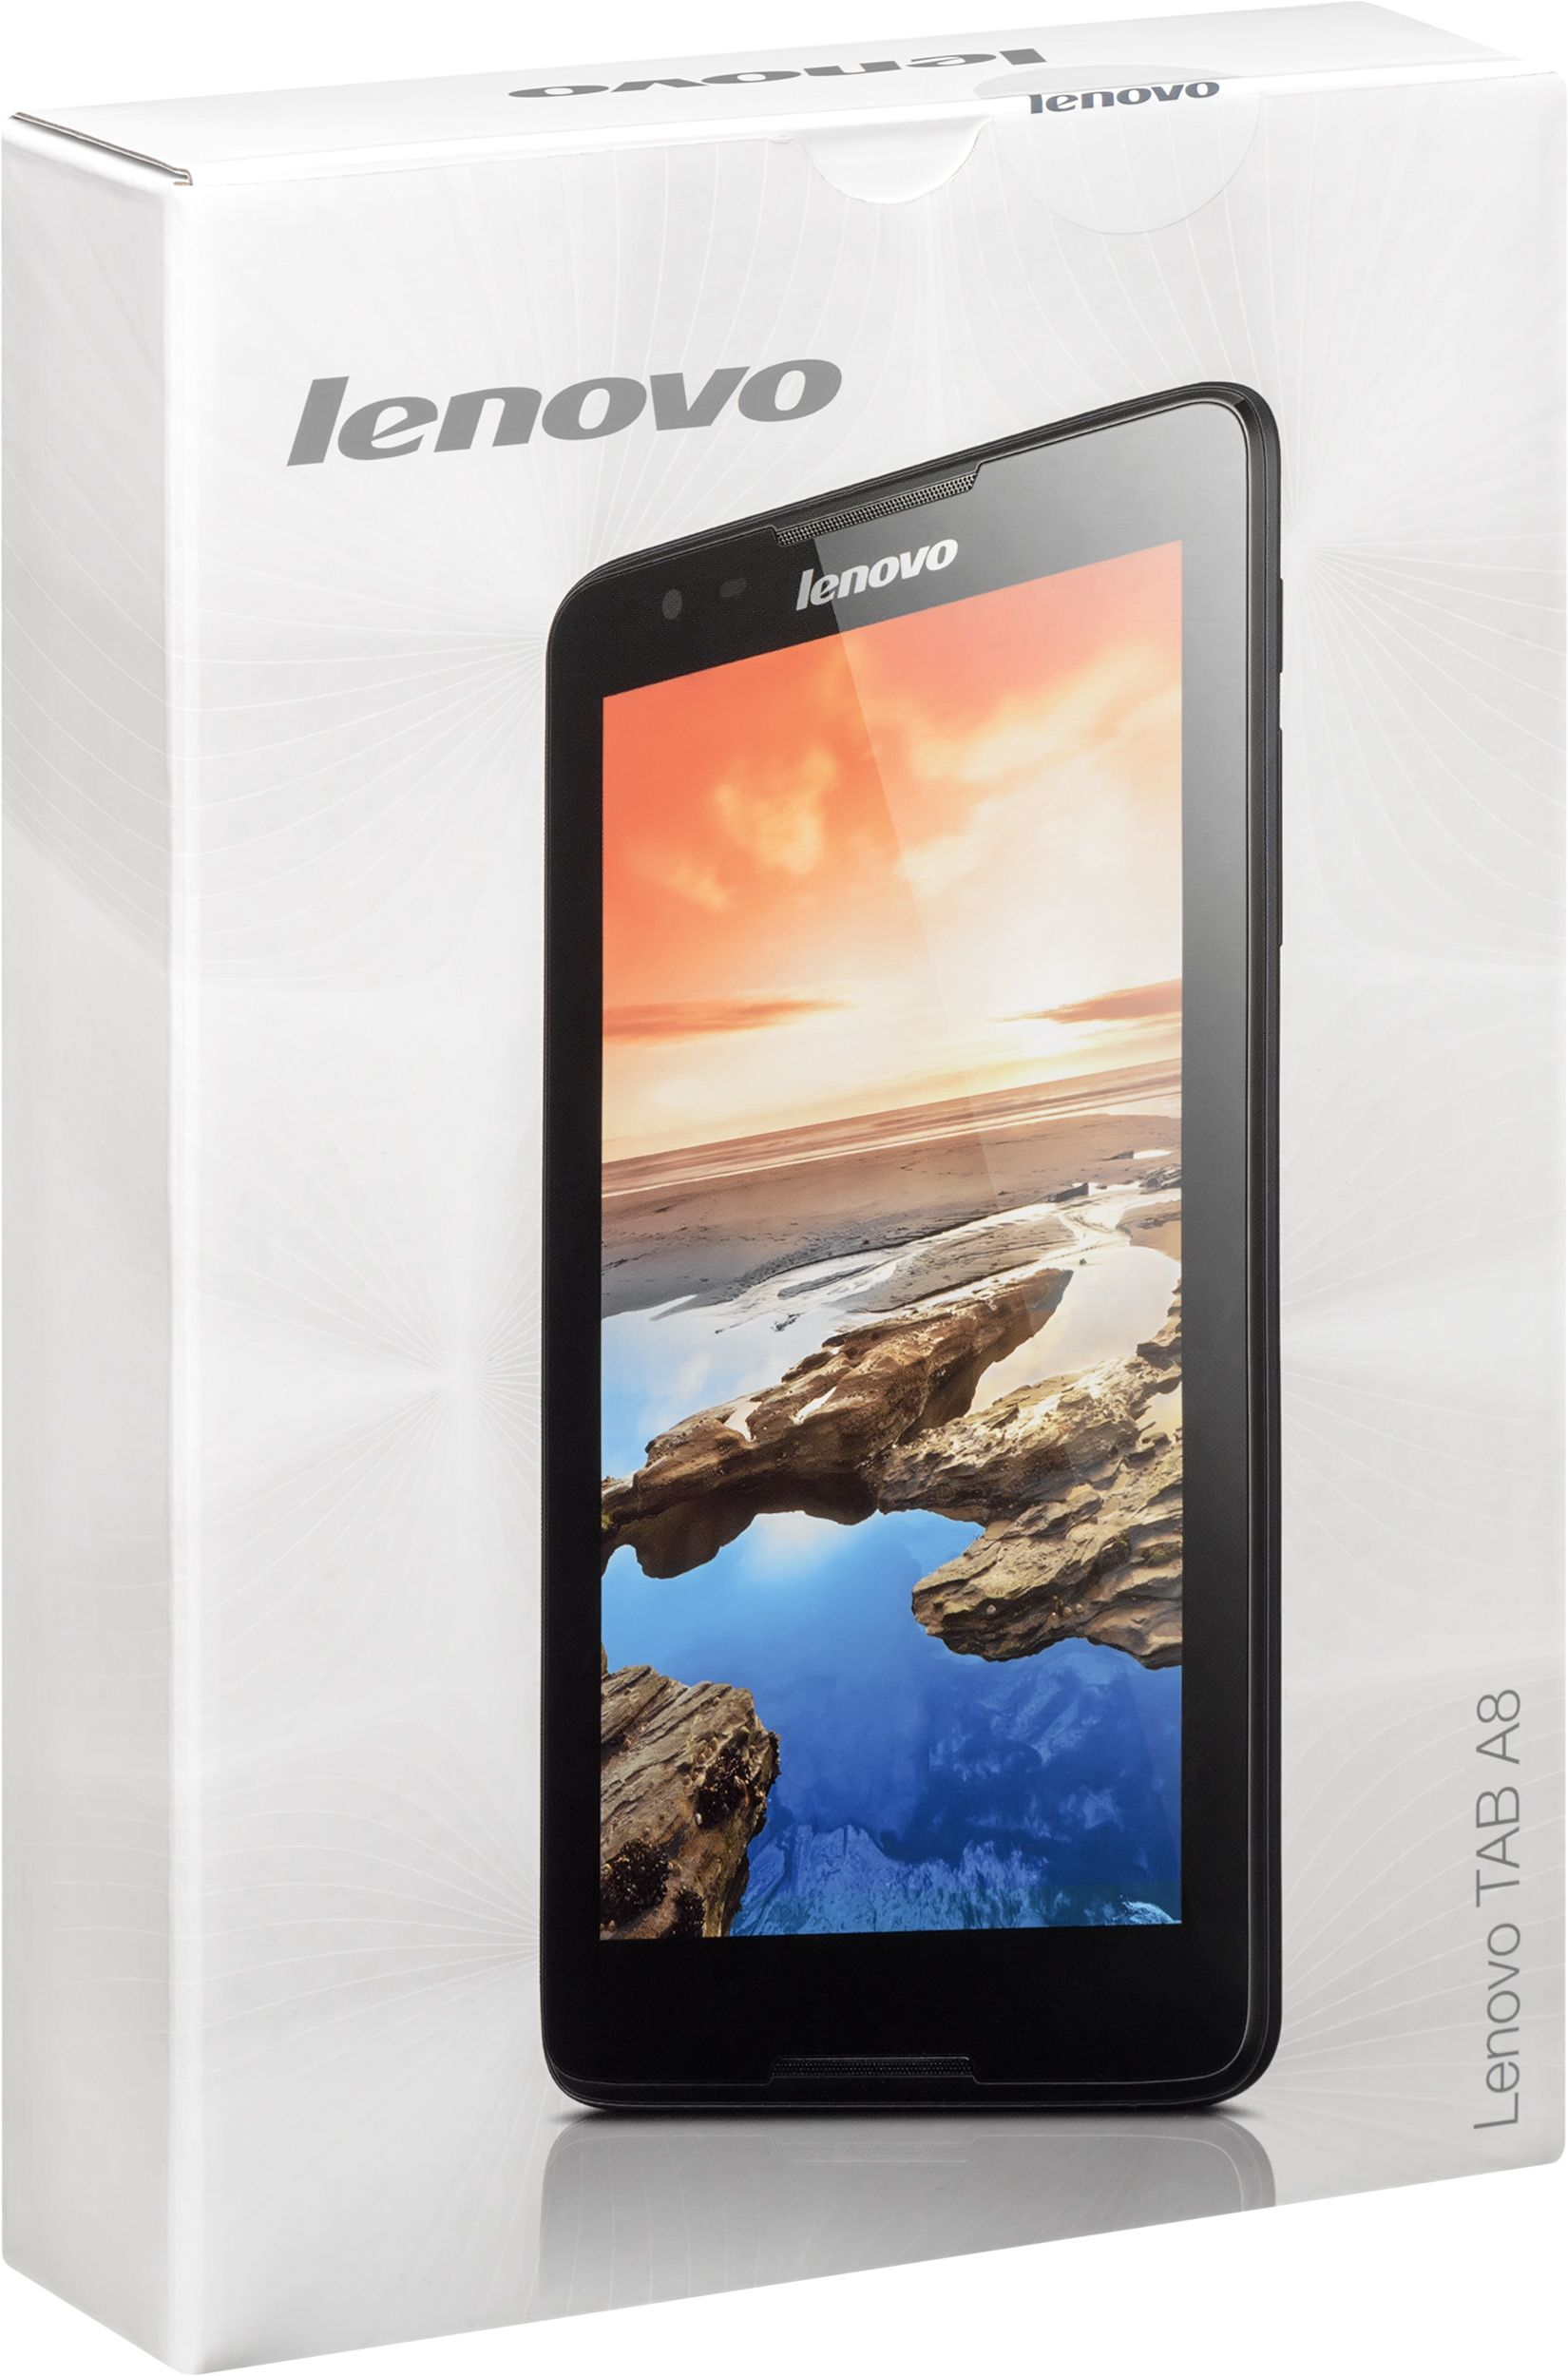 Lenovo IdeaTab A5500 16Gb 3G